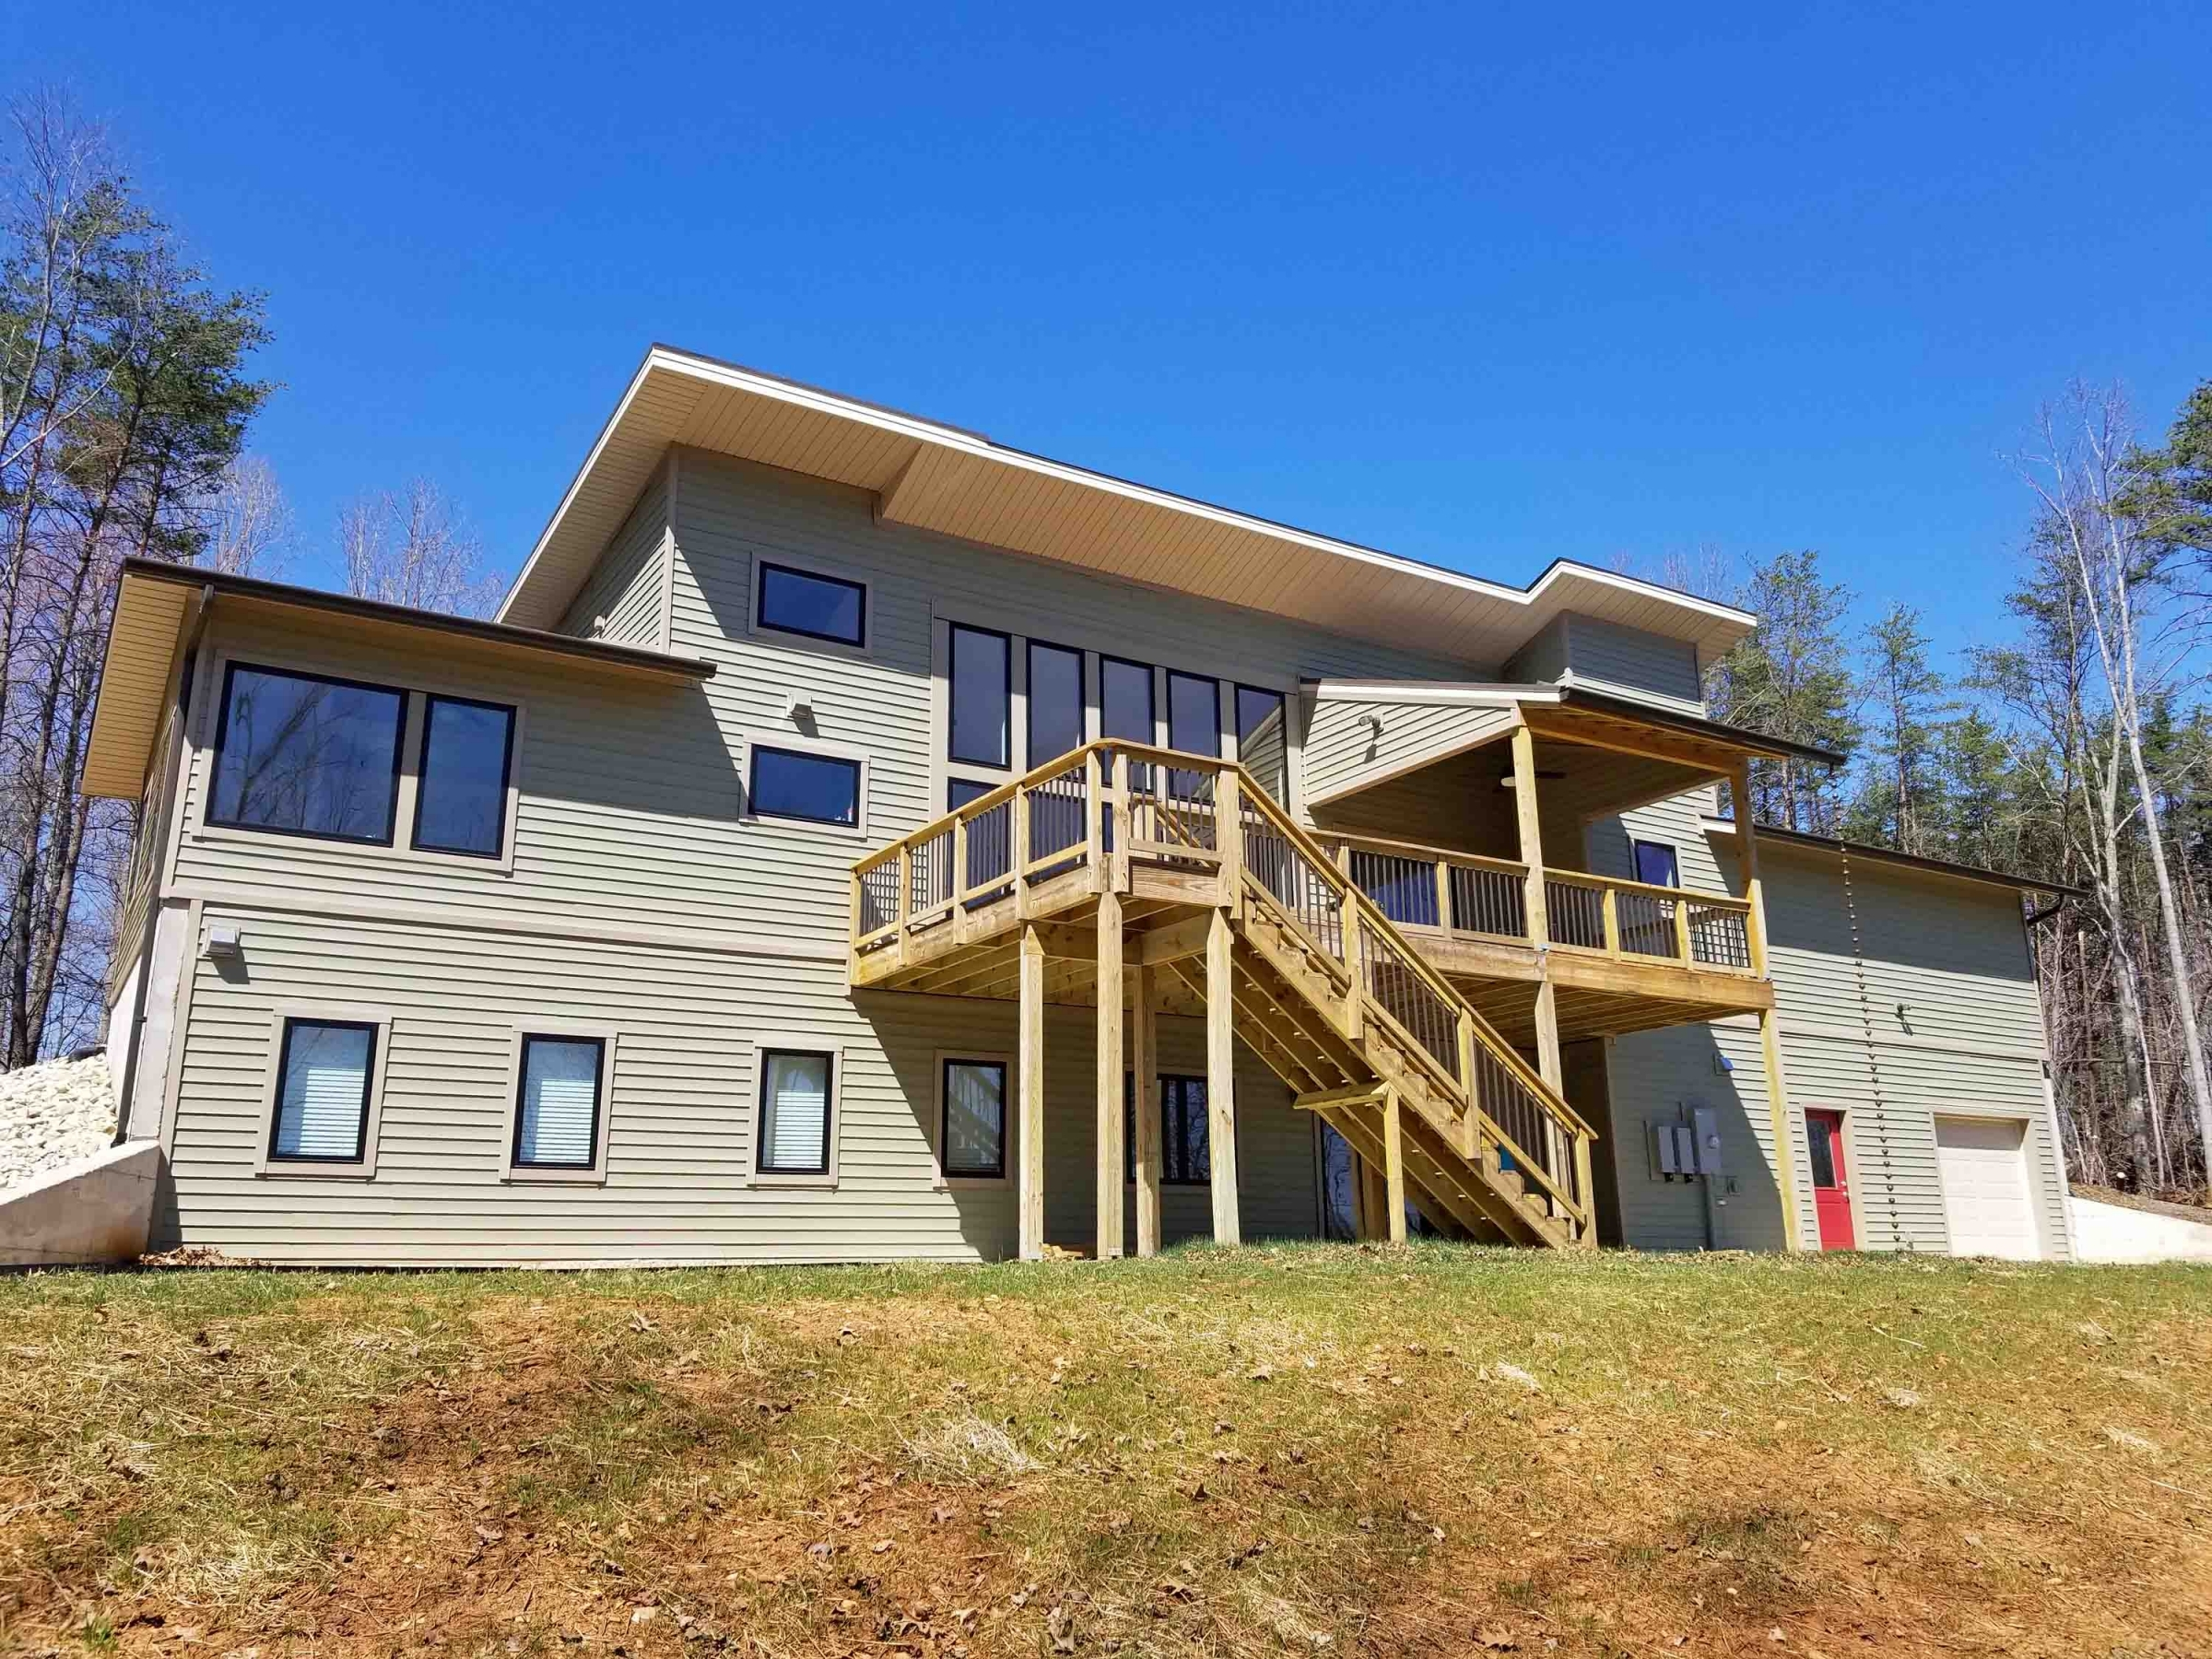 custom home near Smith Mountain Lake VA featuring high performance systems and advanced framing by Timber Ridge Craftsmen Inc